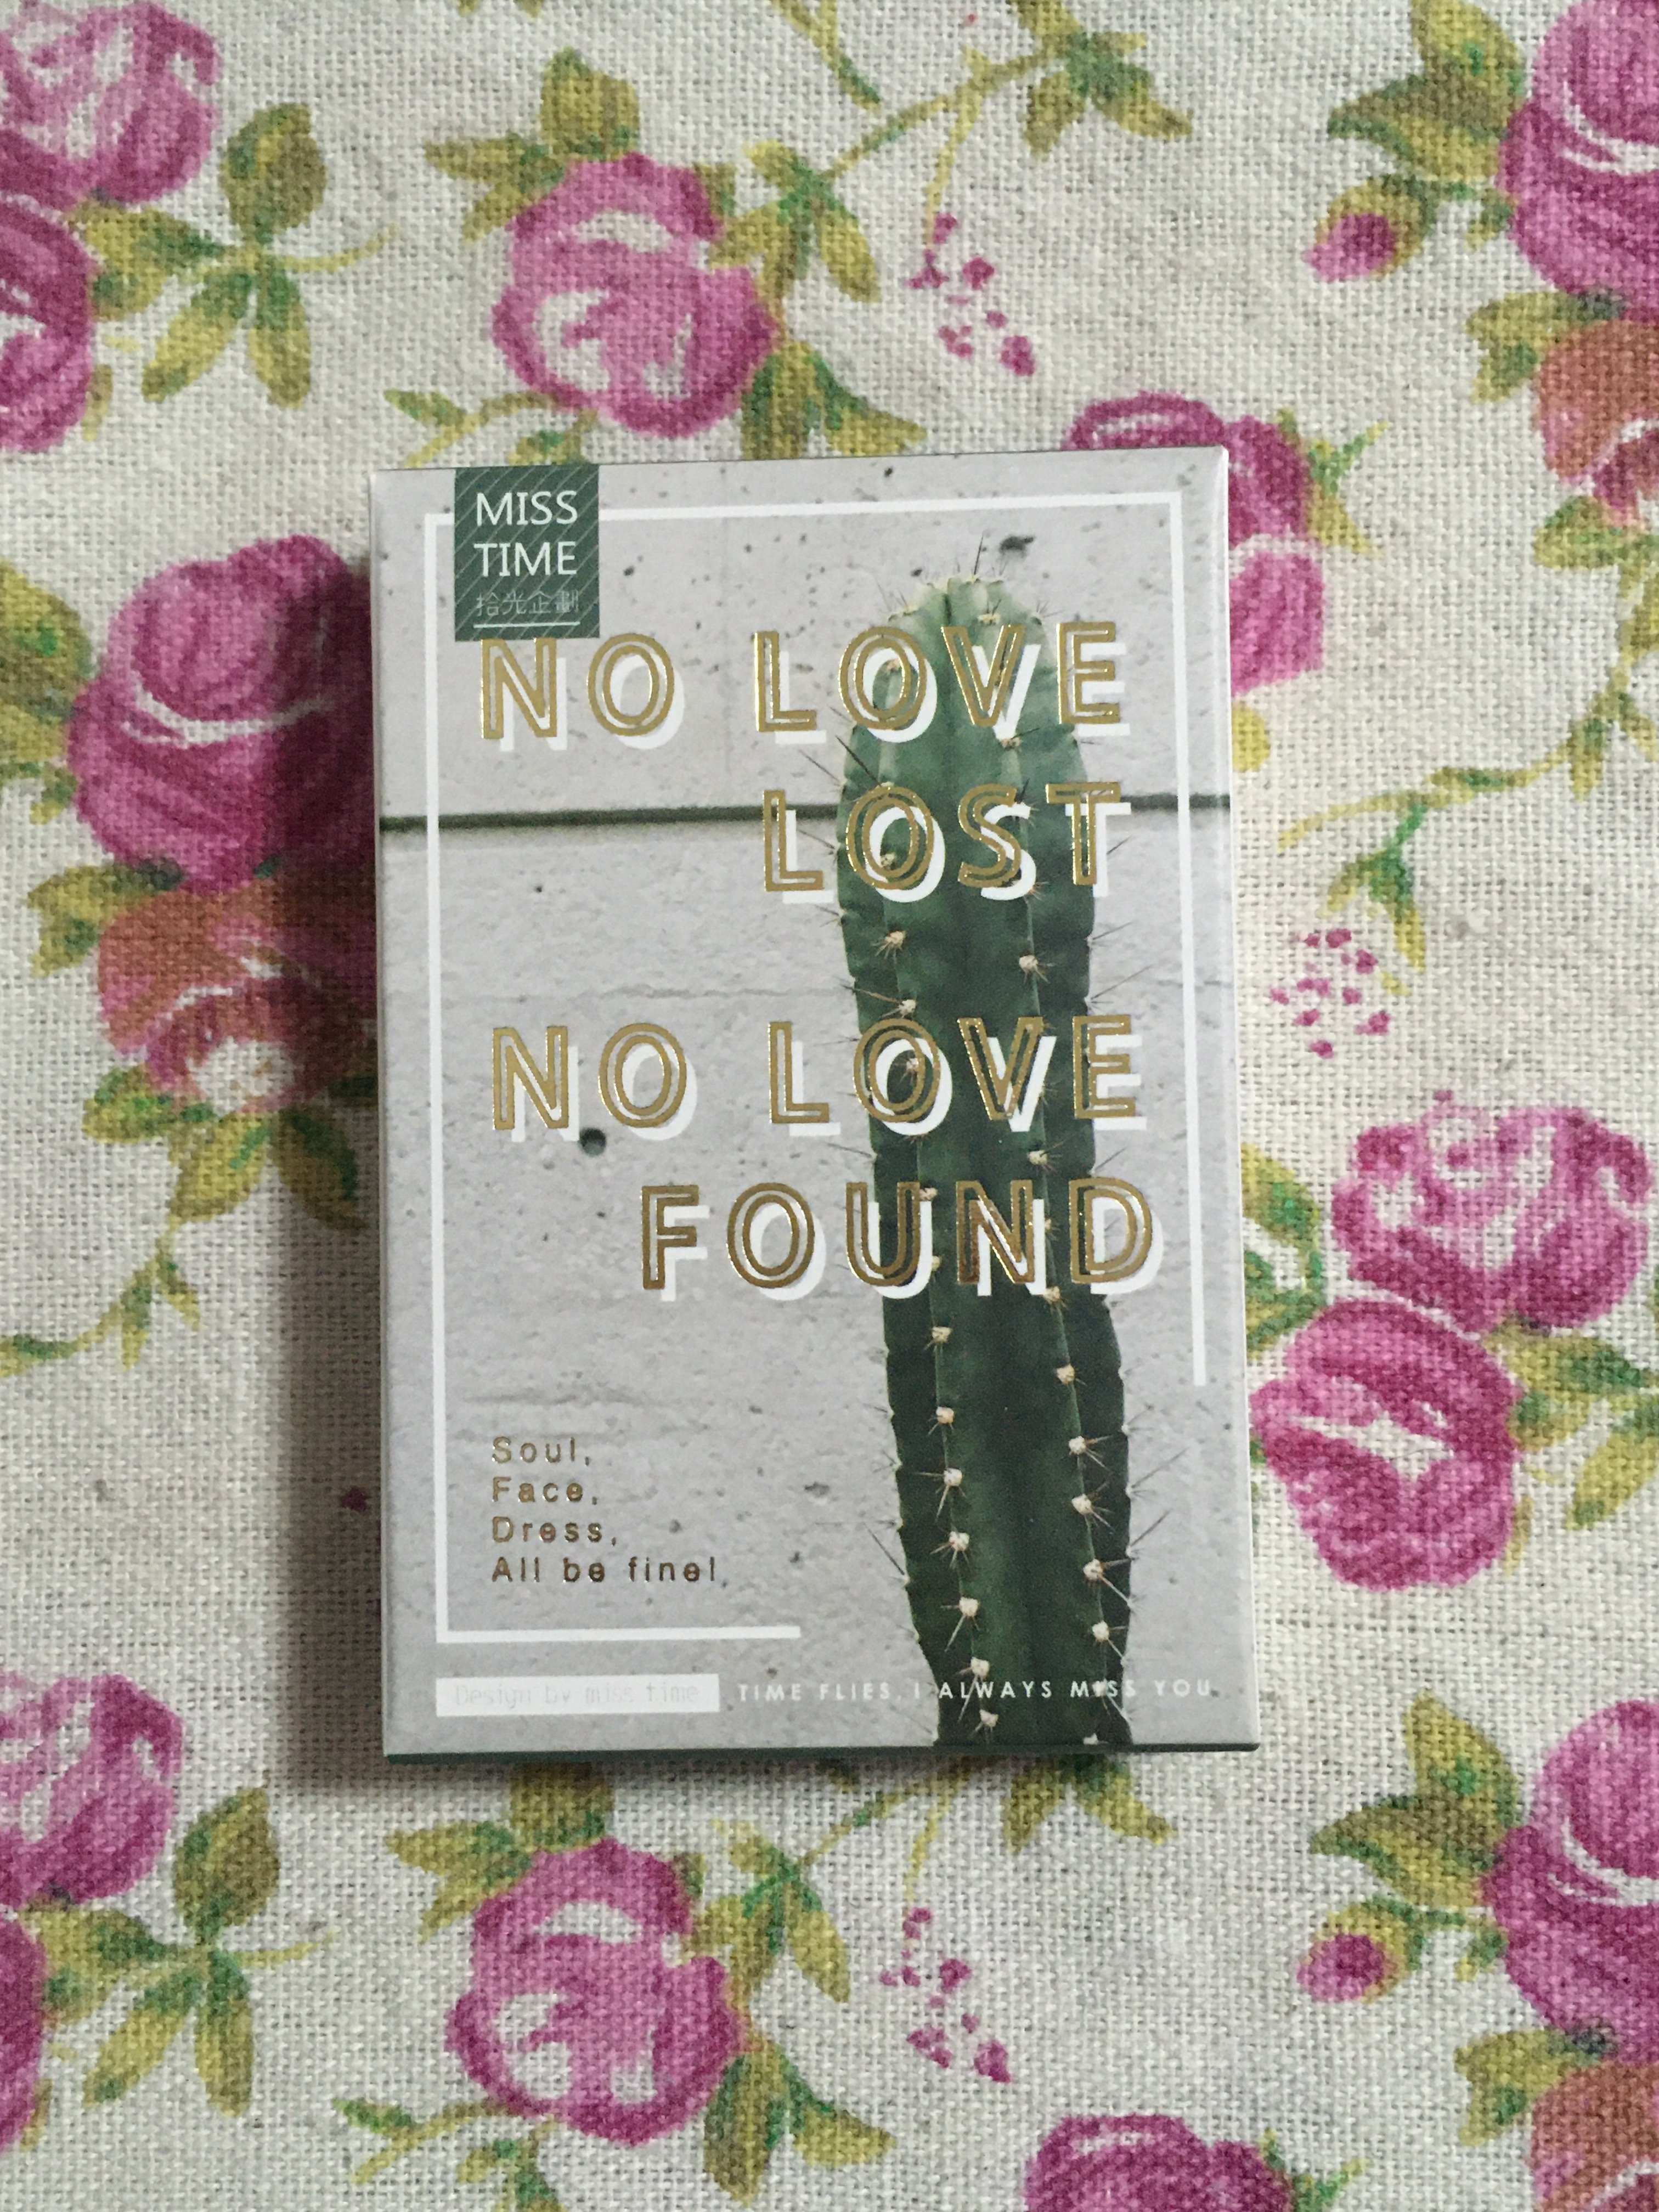 52mm*80mm Find Love Paper Greeting Card Lomo Card(1pack=28pieces)